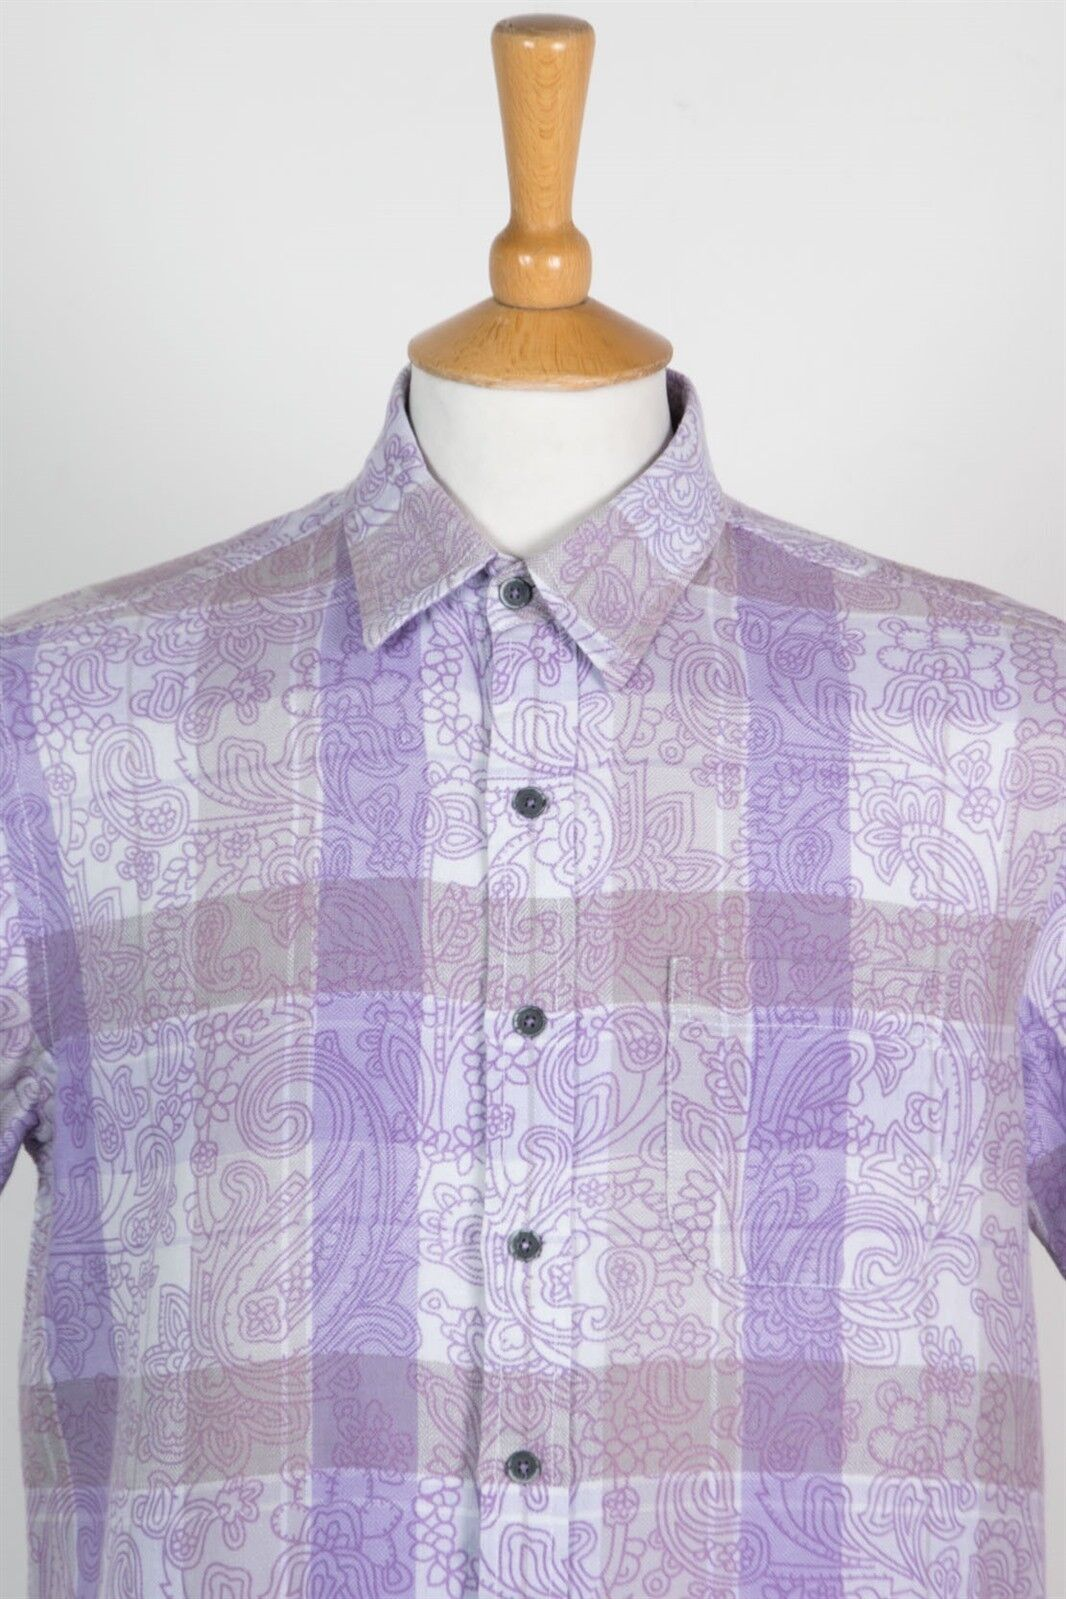 f0f35d063 sizing and shipping info below. DESCRIPTION. MENS RETRO STYLE PURPLE  PAISLEY PATTERN SHORT SLEEVE SHIRT